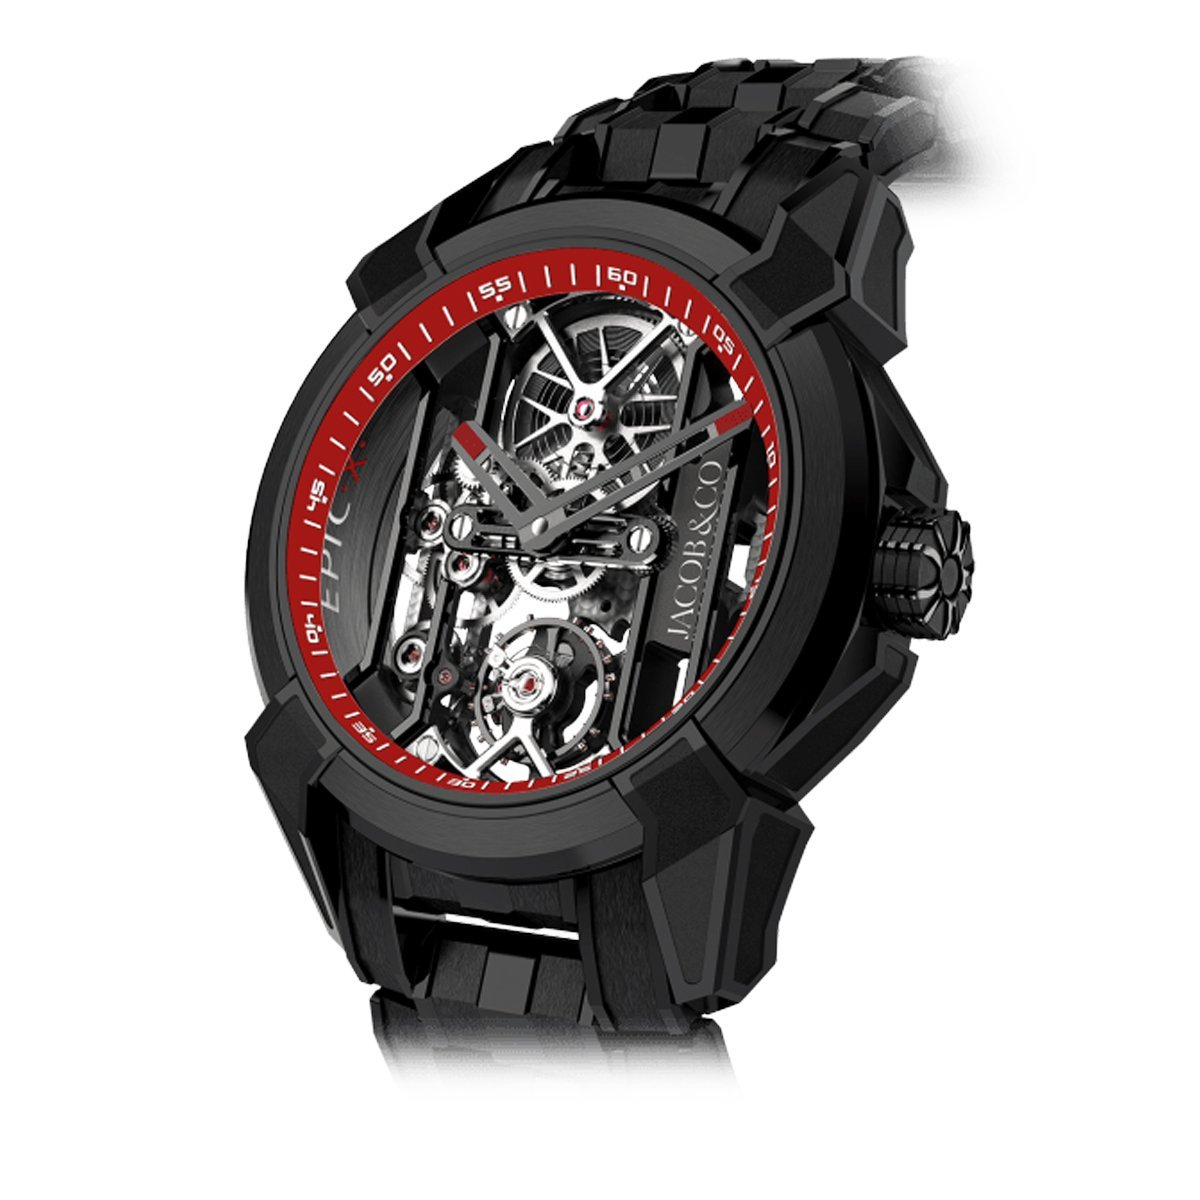 Jacob & Co. Epic X Skeleton Black DLC Bracelet Red - Watches & Crystals